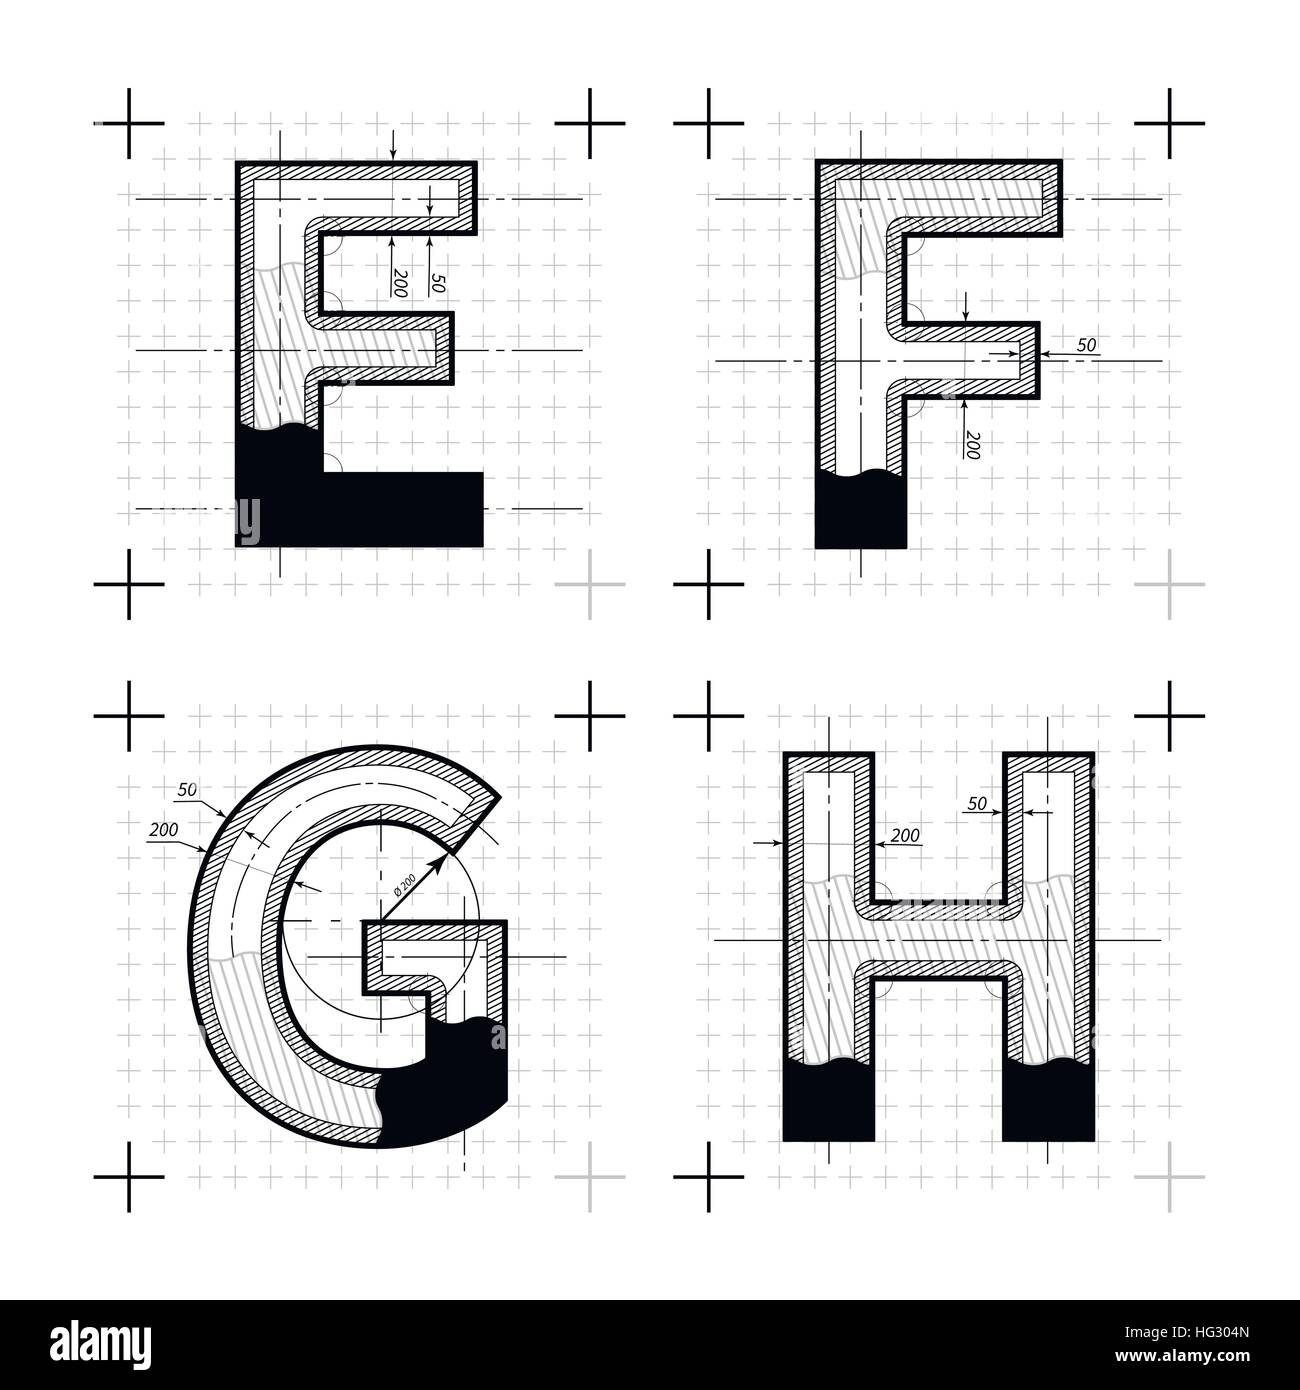 Architectural sketches of e f g h letters blueprint style font on architectural sketches of e f g h letters blueprint style font on white malvernweather Gallery